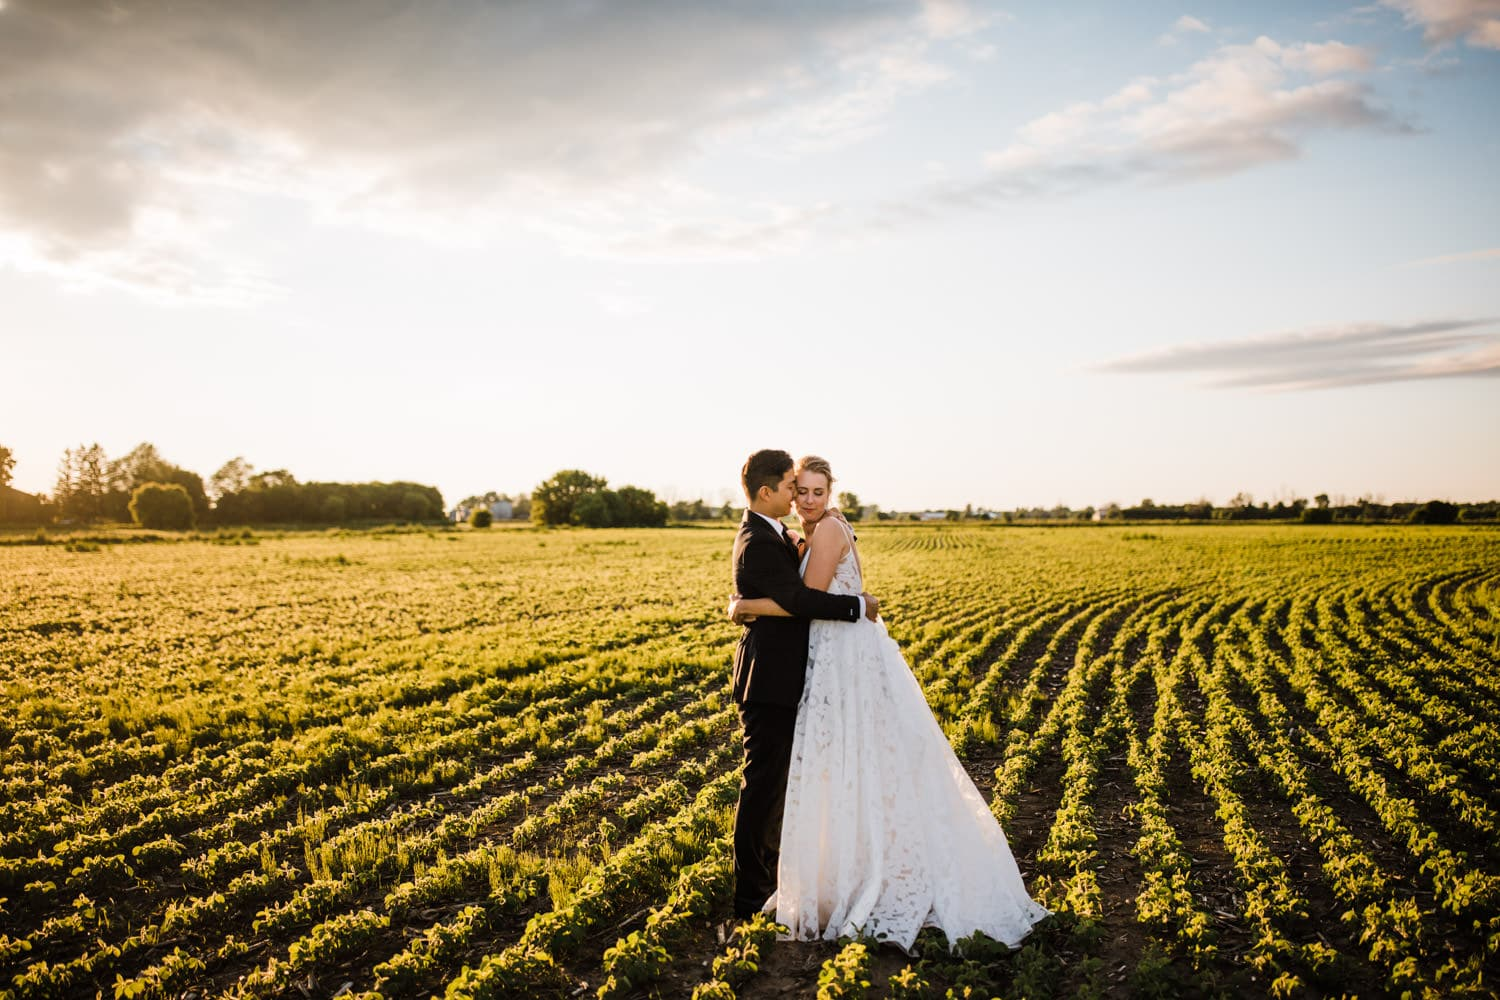 bride and groom hug in field at sunset - carley teresa photography - ottawa backyard wedding